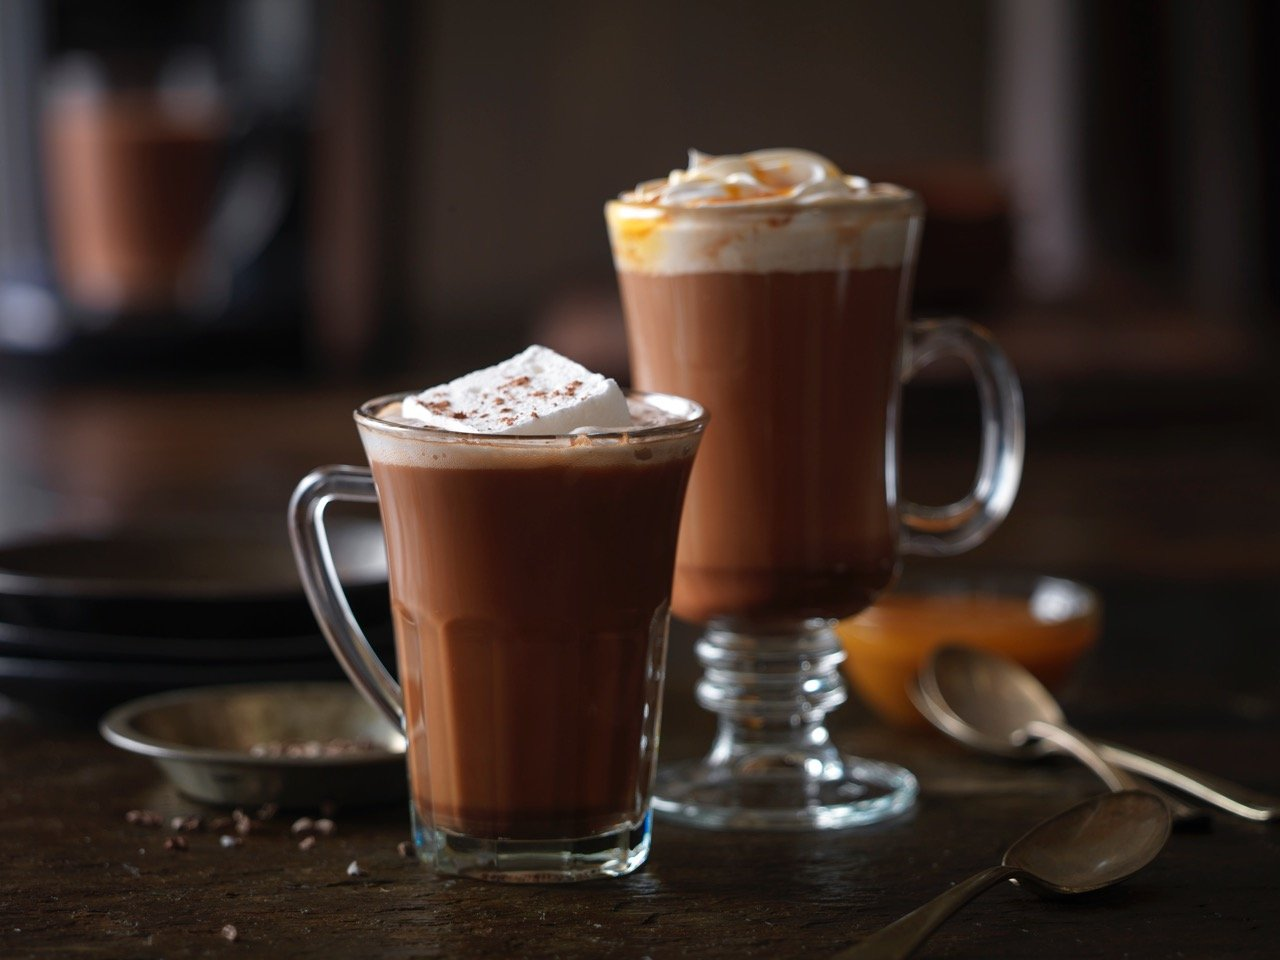 Amazon.com : Starbucks Classic Hot Cocoa, 30 Ounce : Starbucks Hot ...